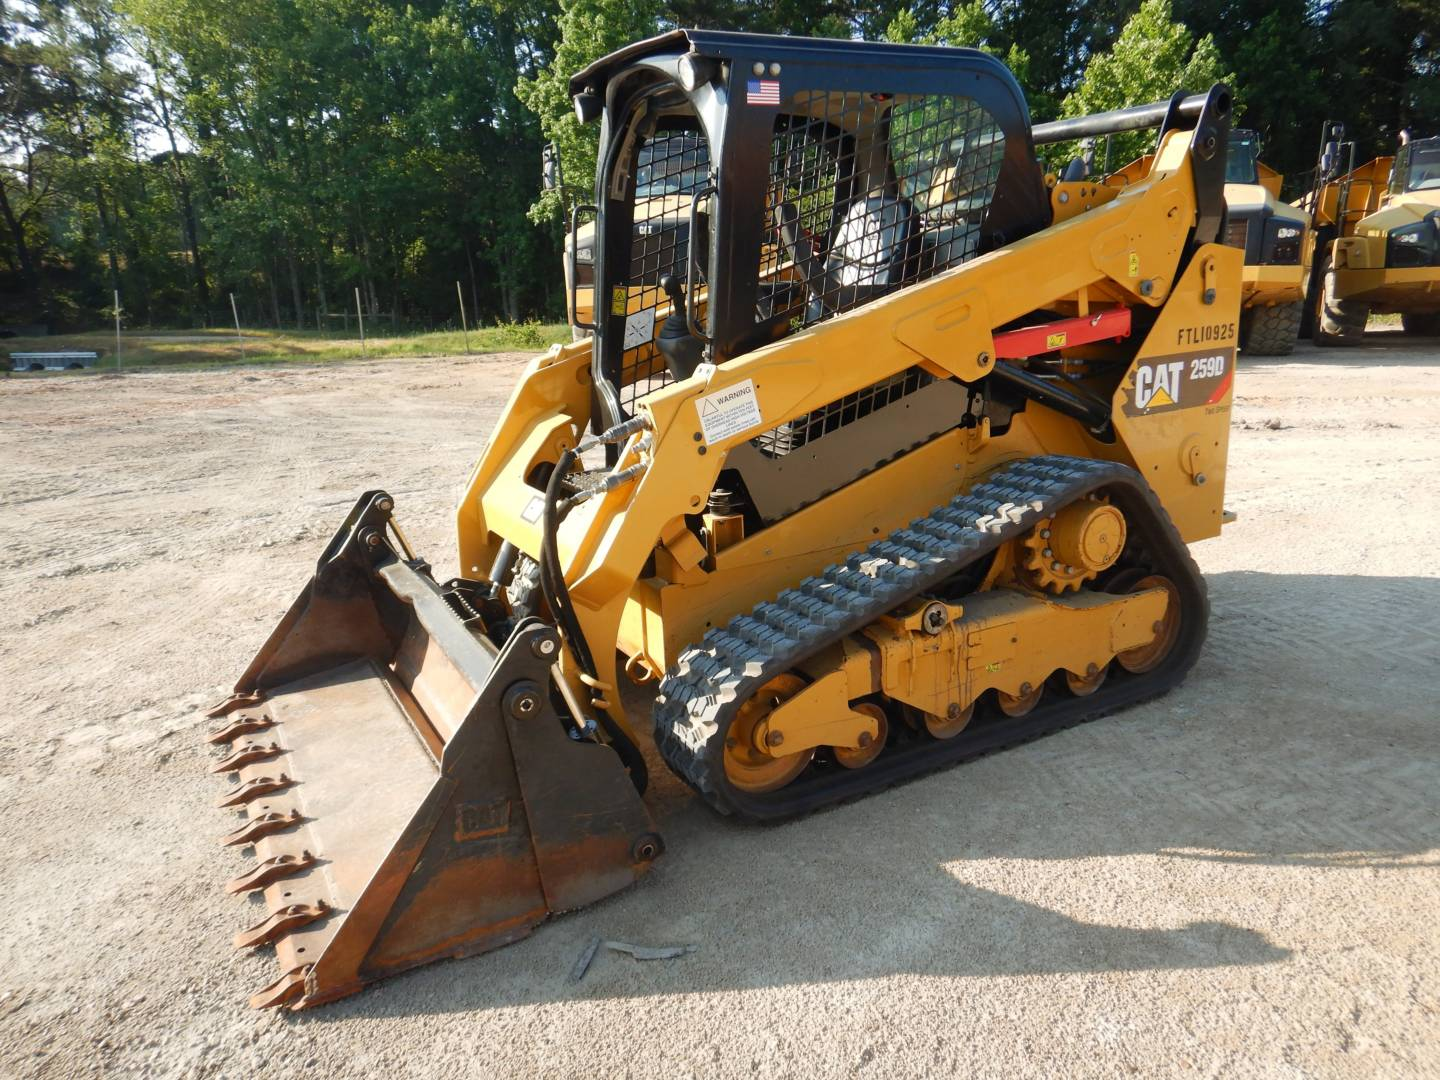 Used 2017 Caterpillar 259 D for Sale in NJ, PA, DE and Staten Island